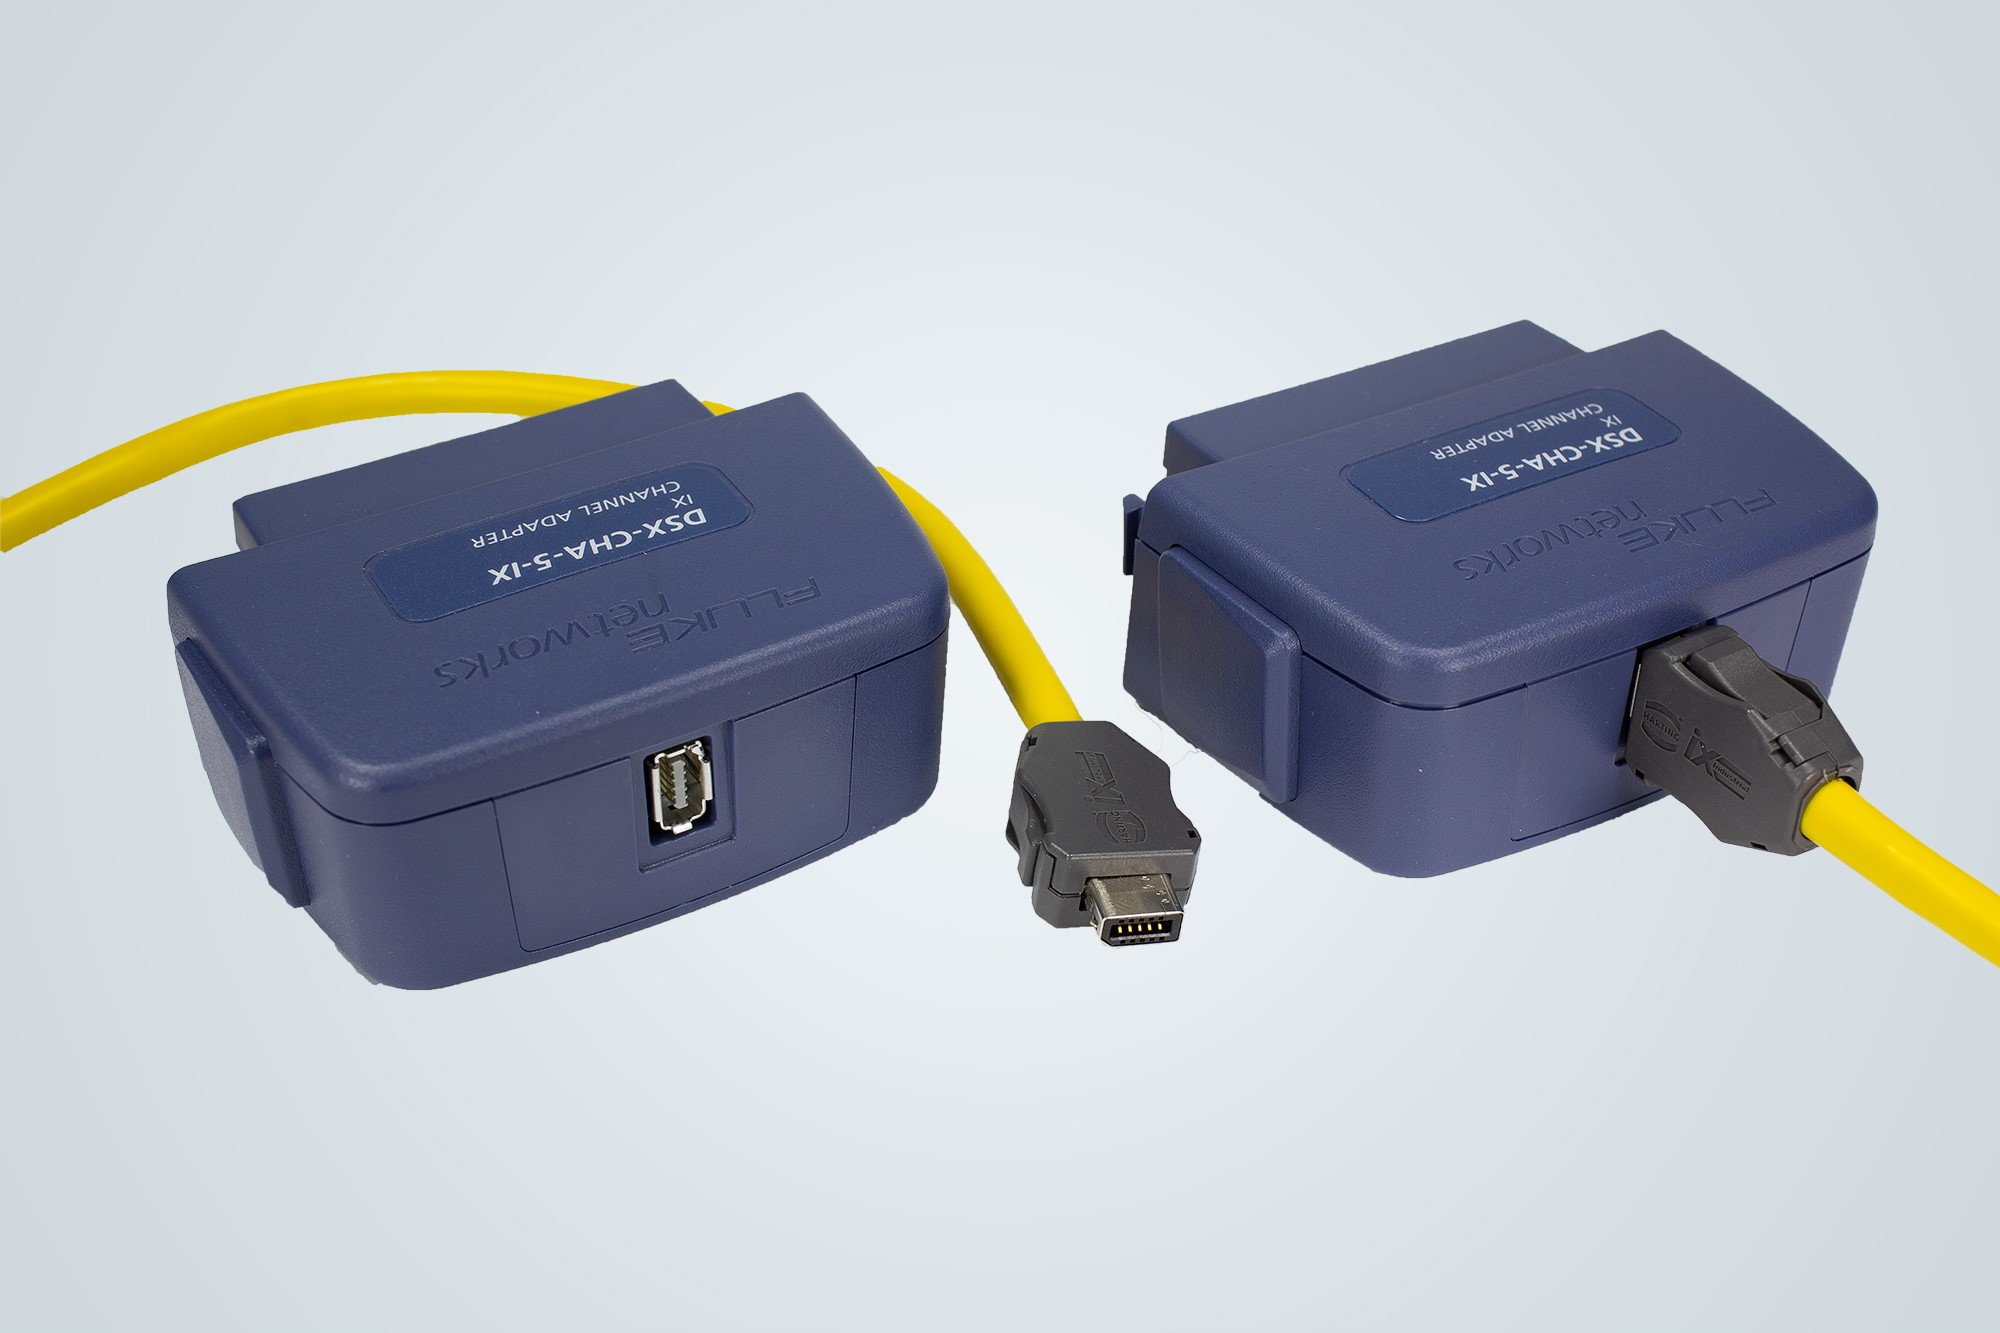 HARTING, HIROSE and FLUKE networks announce ix Industrial Ethernet Connector test adapter for FLUKE DSX CableAnalyzer